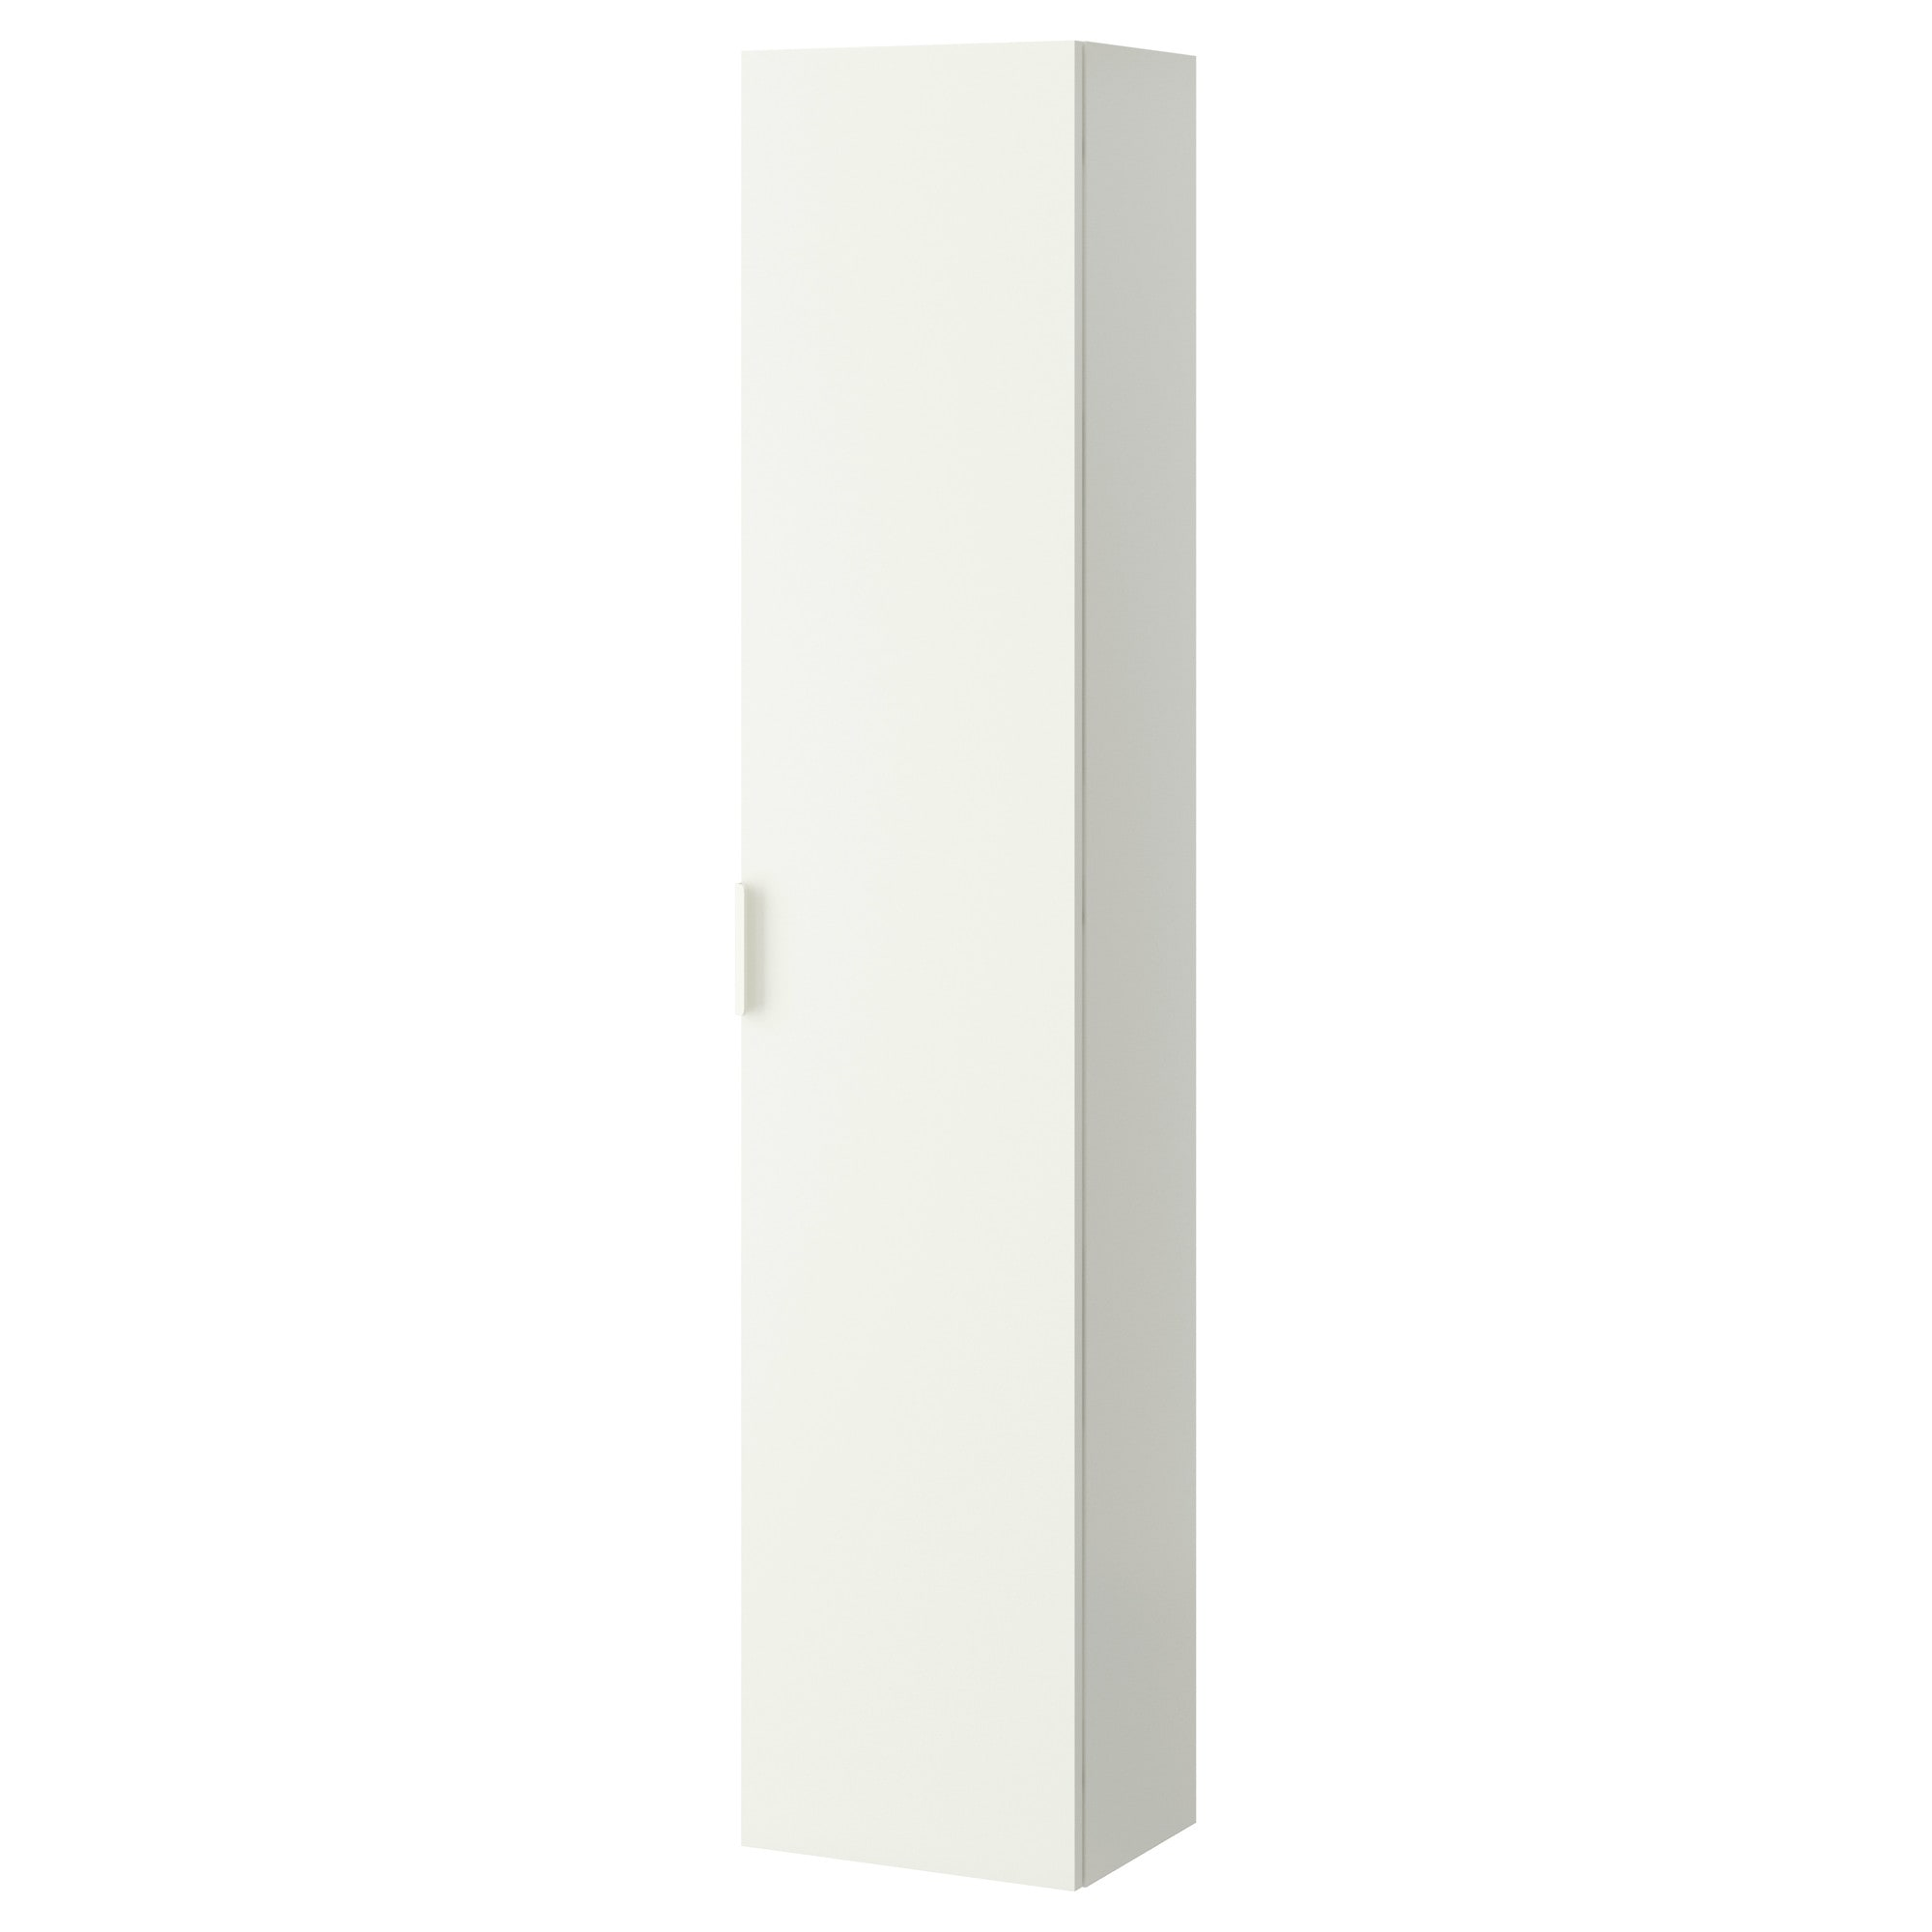 Ikea bathroom floor cabinet - Godmorgon High Cabinet White Width 15 3 4 Depth 12 5